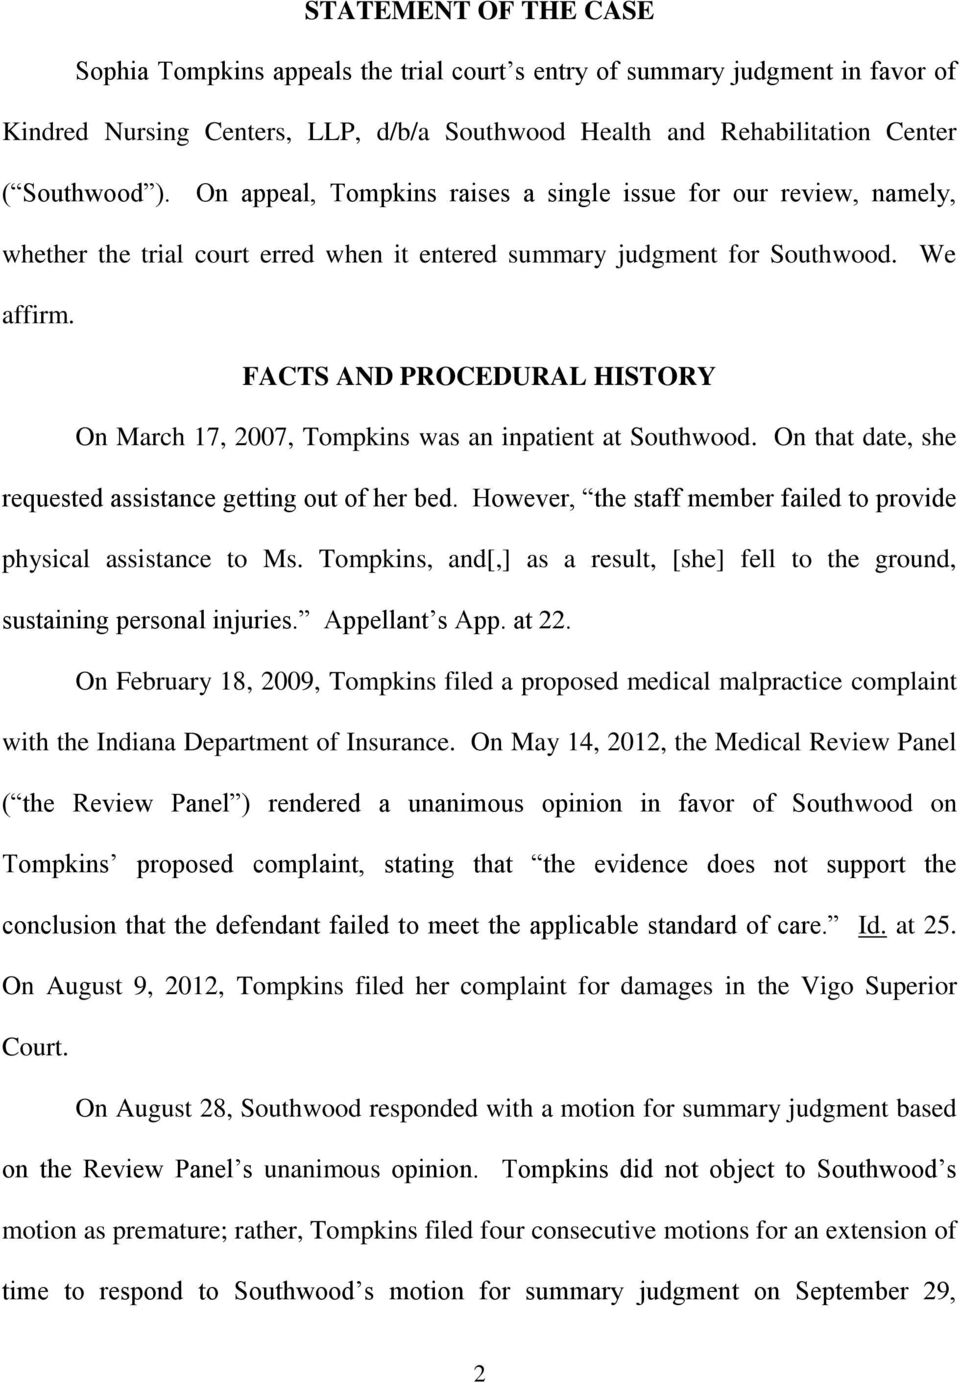 FACTS AND PROCEDURAL HISTORY On March 17, 2007, Tompkins was an inpatient at Southwood. On that date, she requested assistance getting out of her bed.